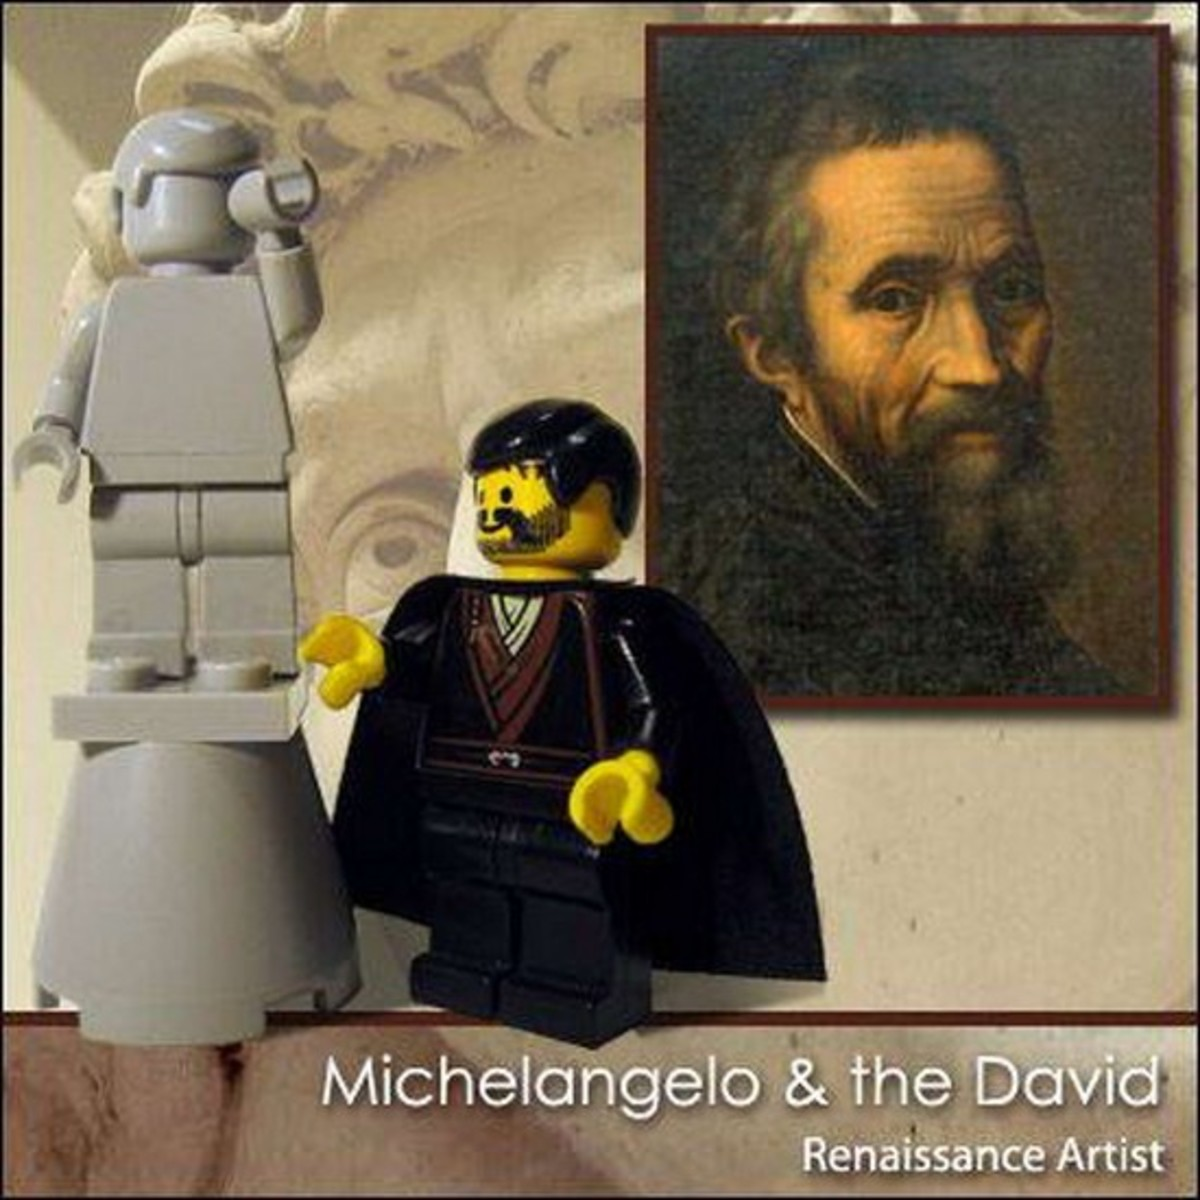 Michelangelo Lego Photo